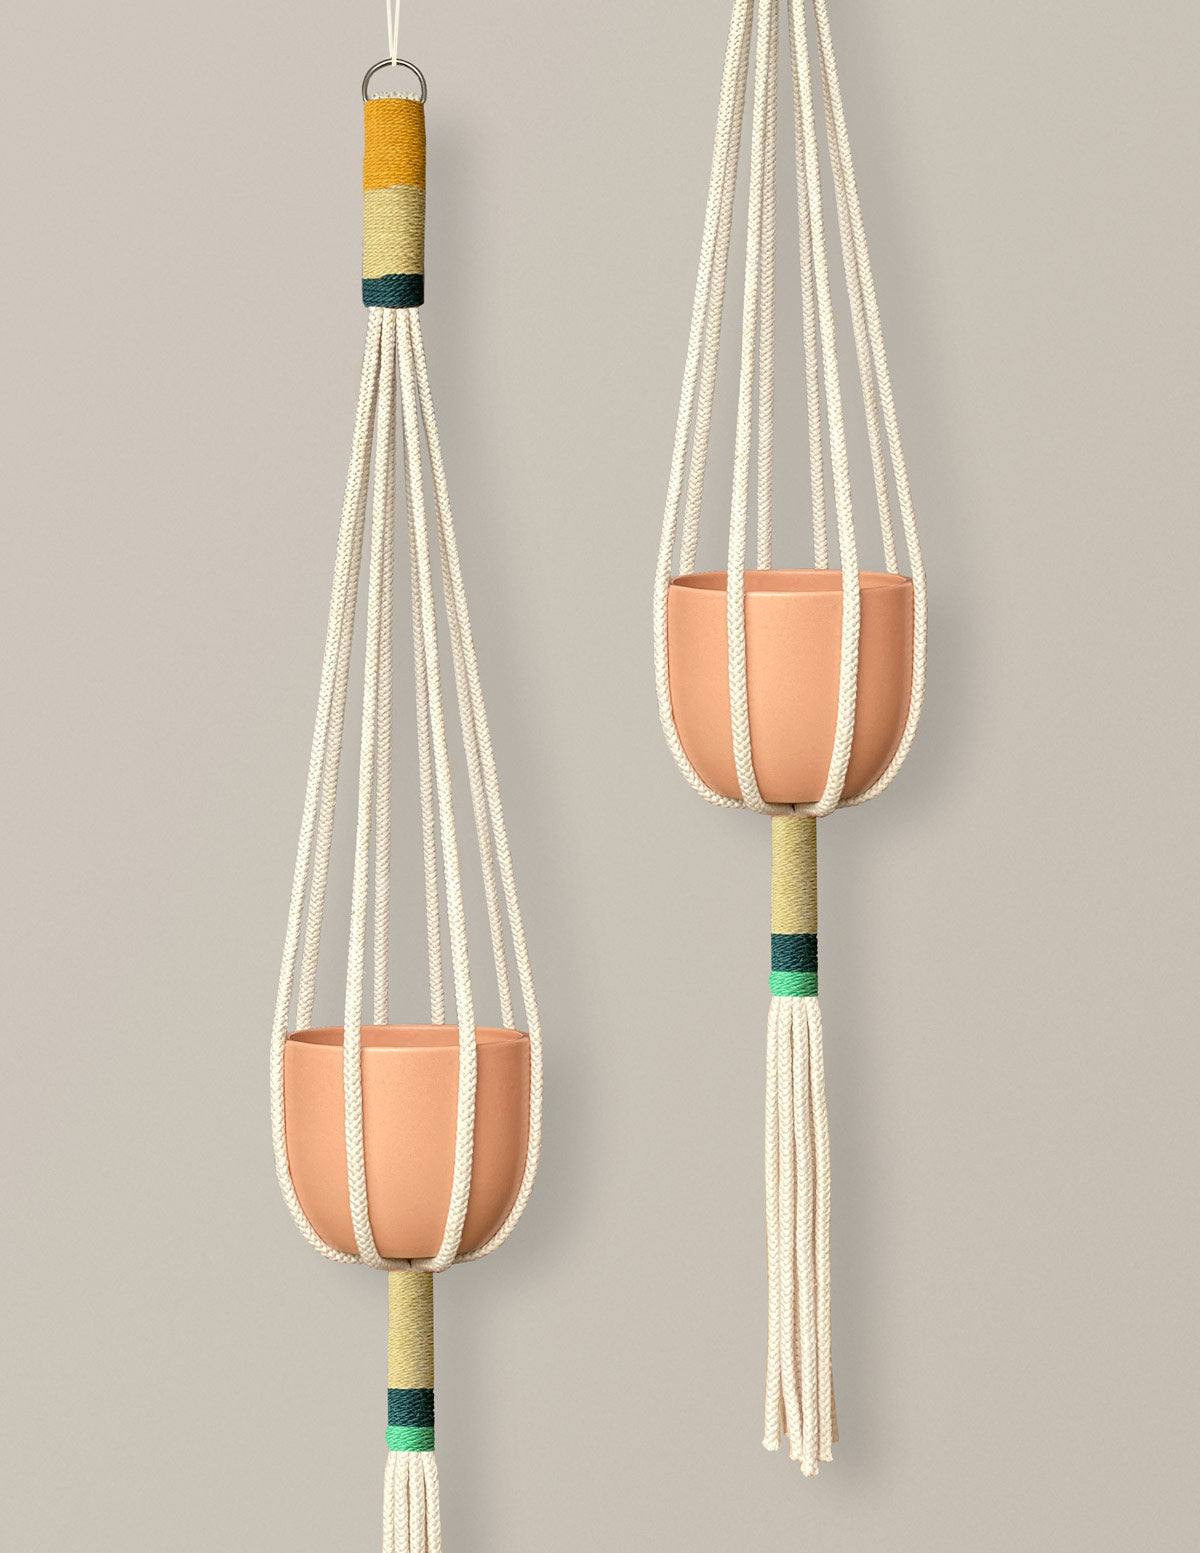 Color Block Macramé Plant Hanger